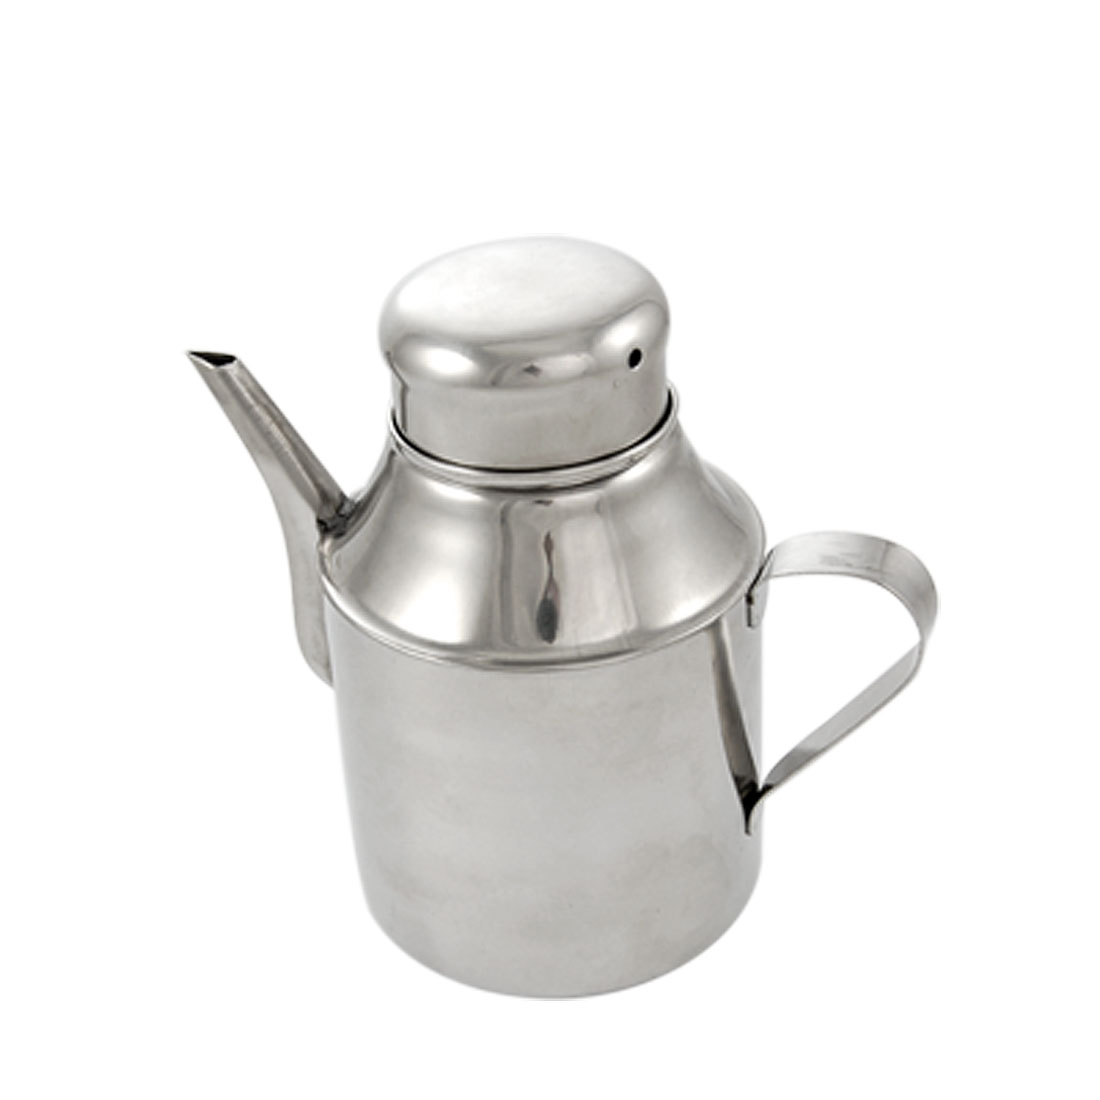 13oz Lidded Shanked Silver Tone Stainless Steel Oil Pot Oilcan